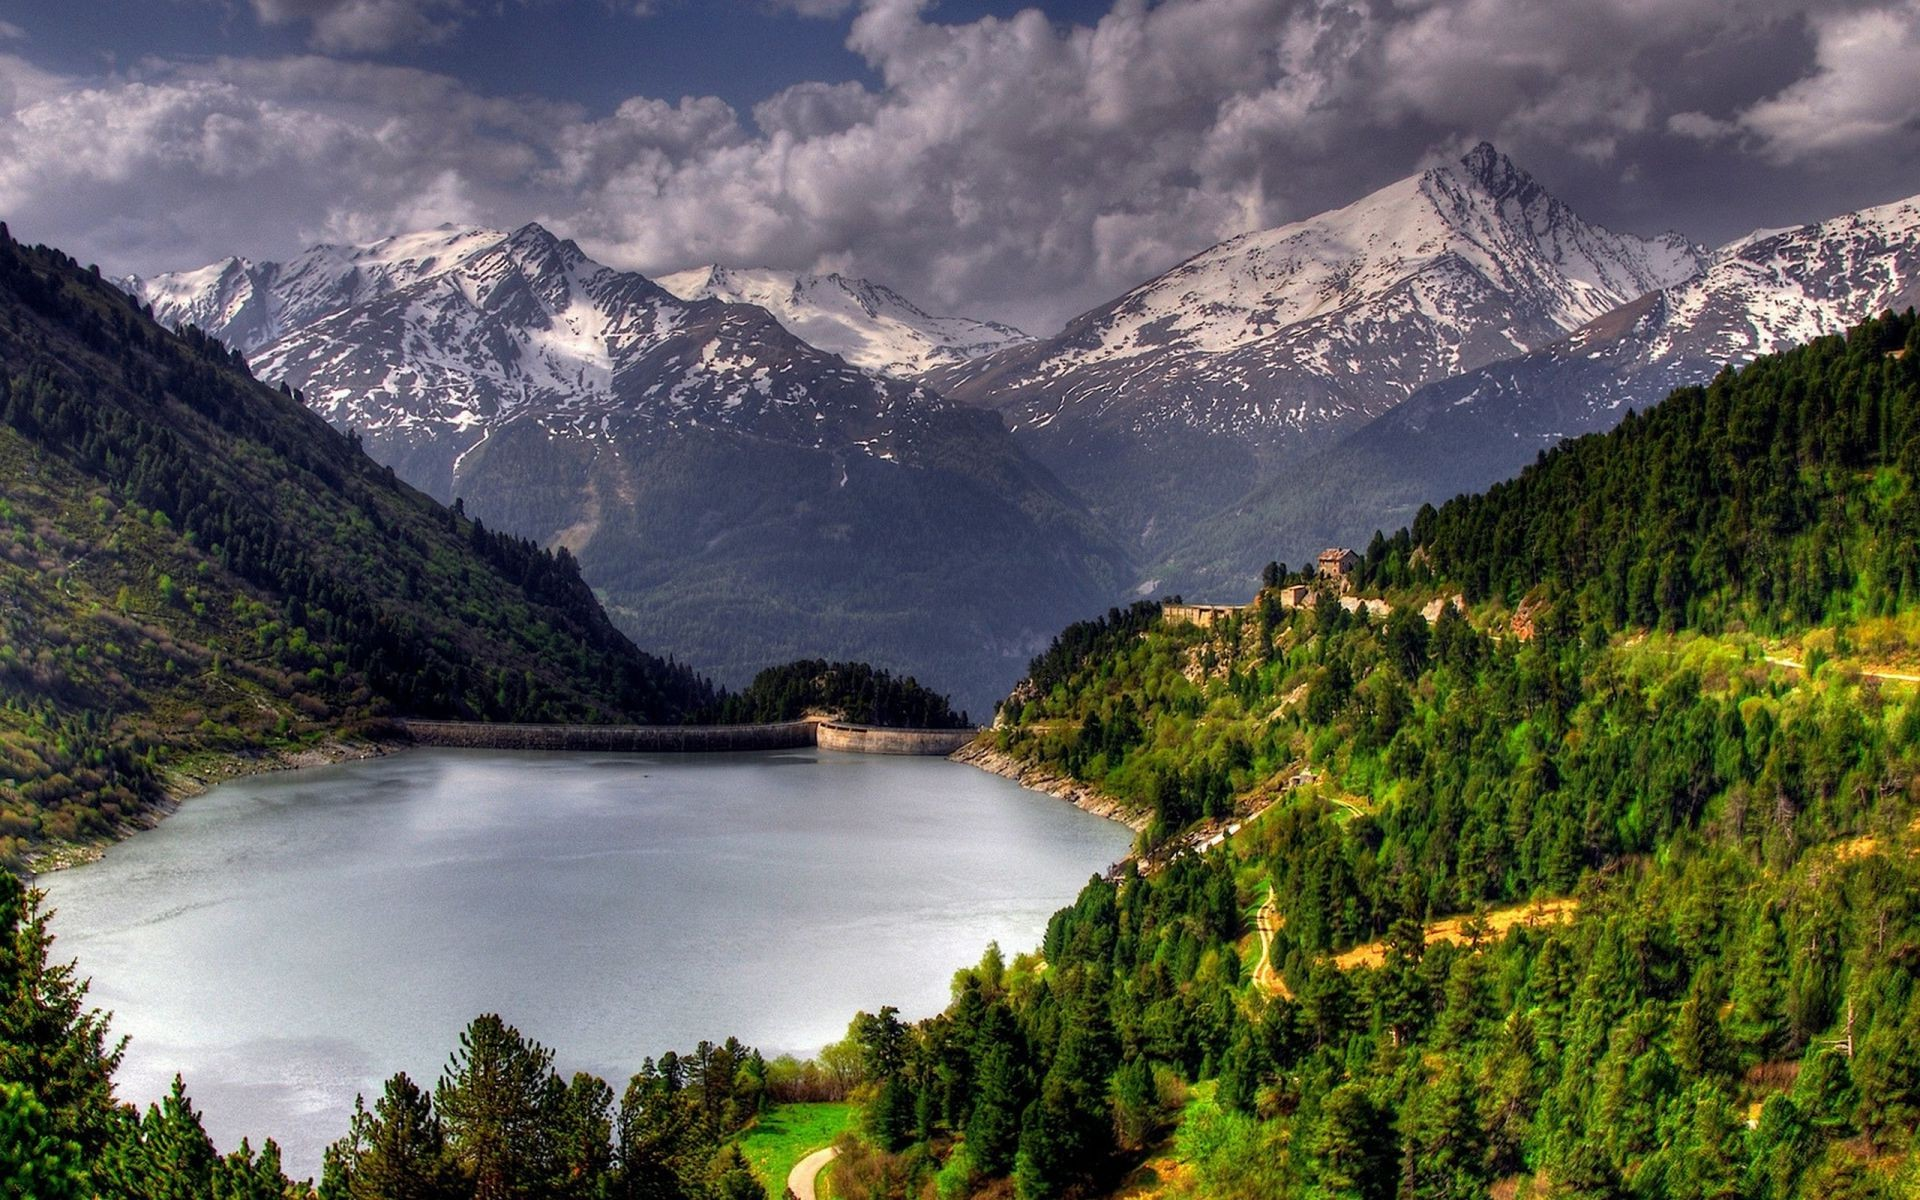 mountains mountain water travel landscape nature lake outdoors wood valley river scenic sky reflection